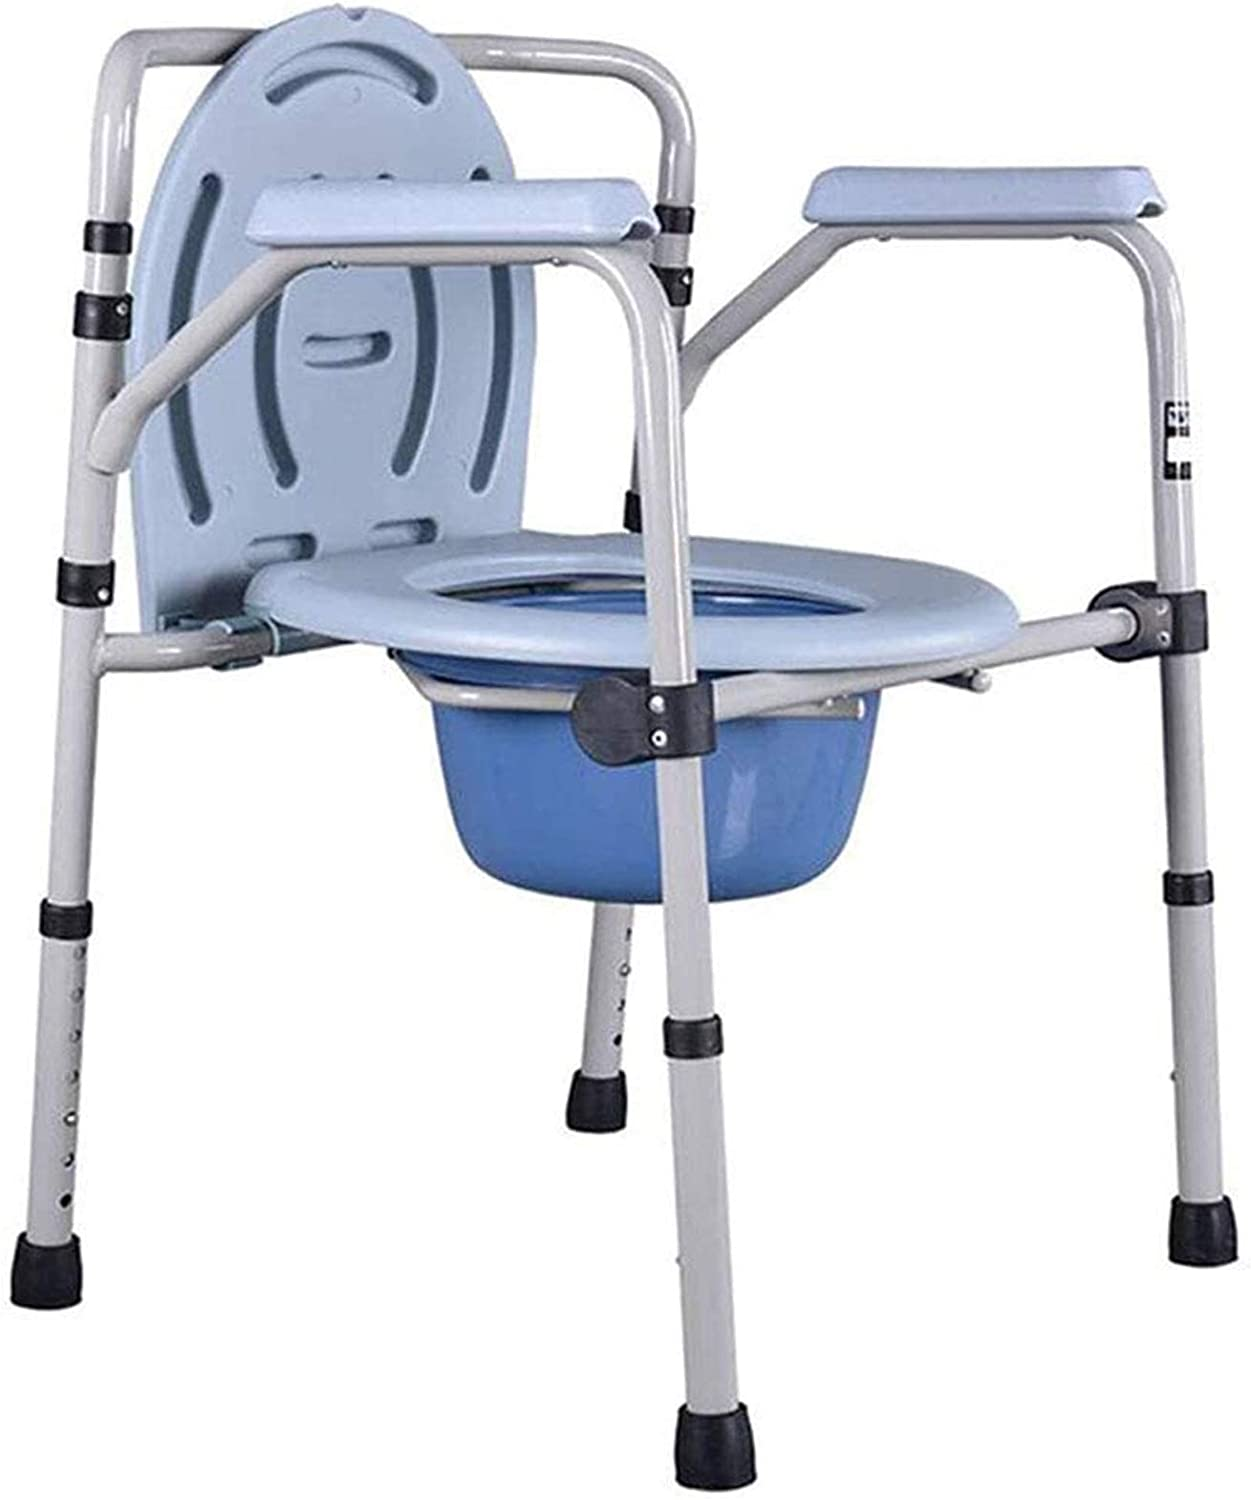 Sales HMMN Steel 3-in-1 Bedside Commode Seat Chair lowest price Portable Por Toilet